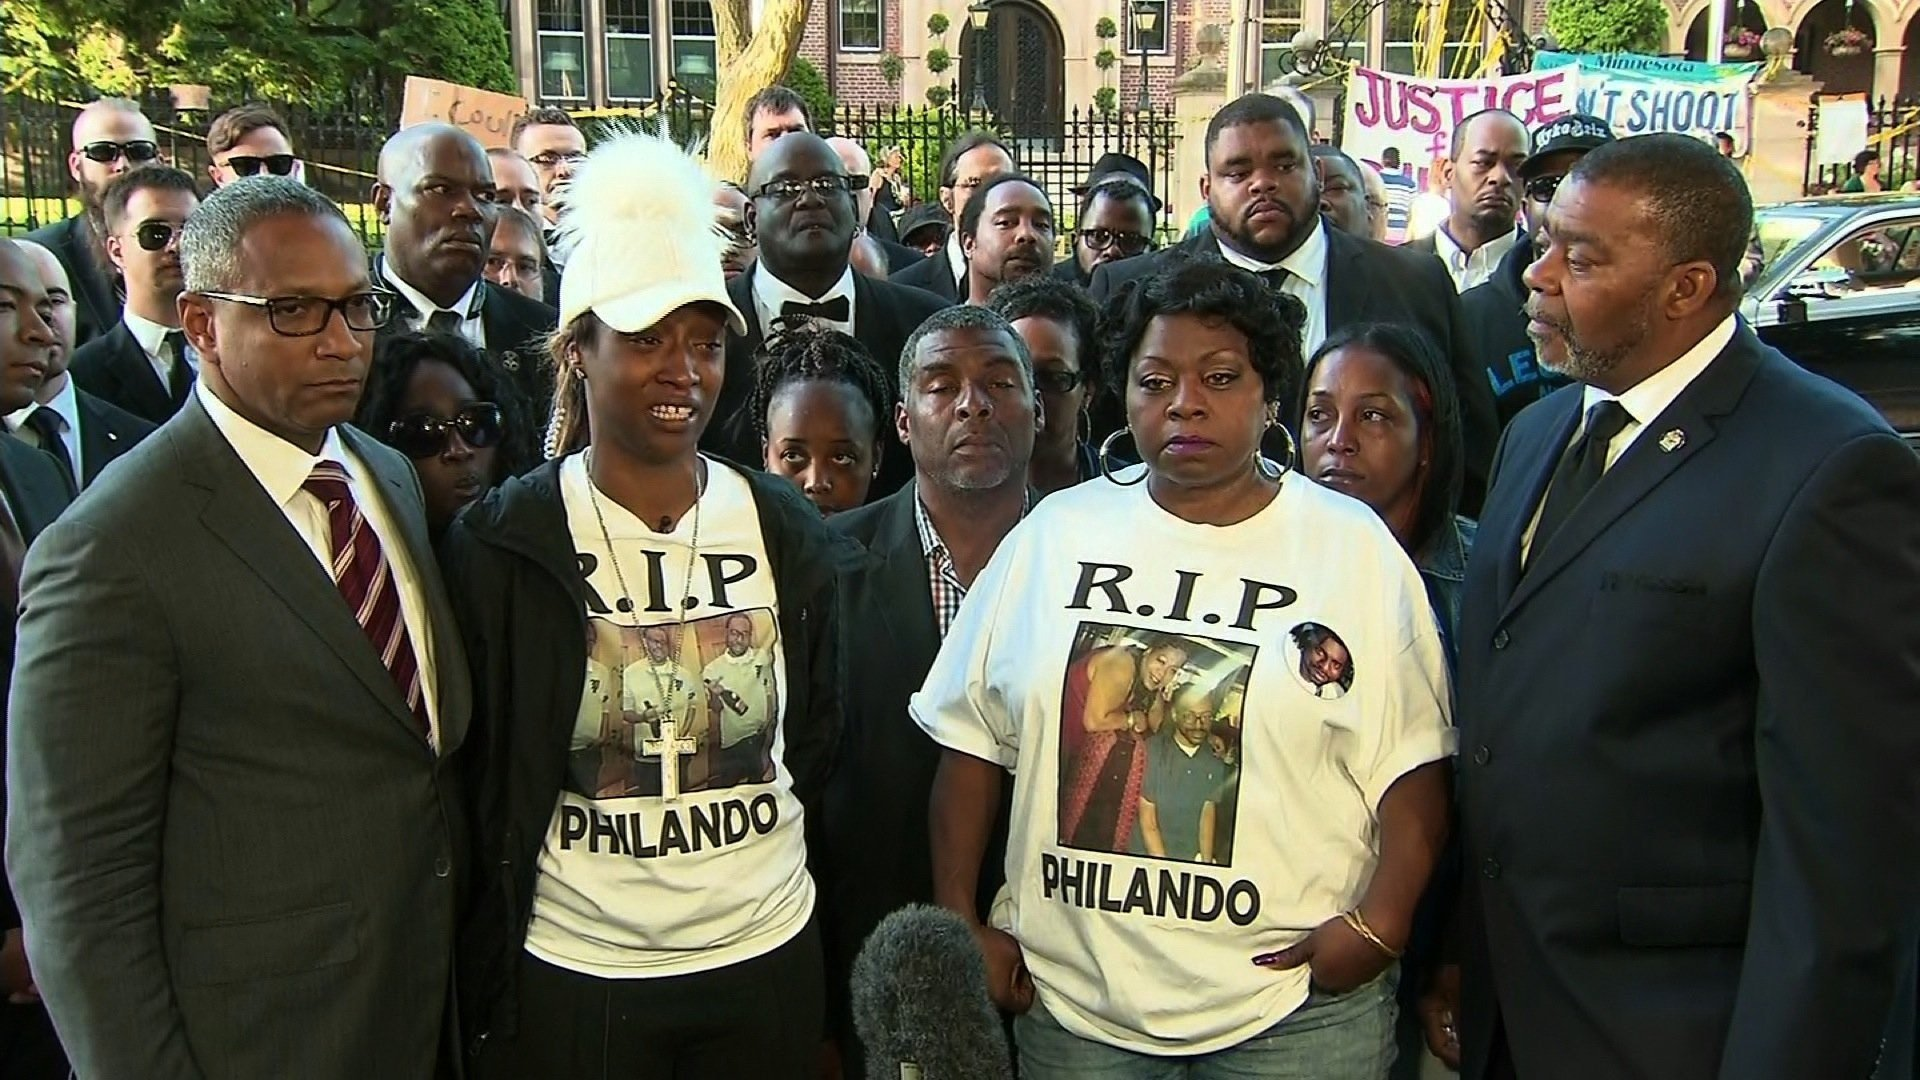 Diamond Reynolds (second to left), who saw a police officer fatally shoot her fiancé, Philando Castile, during a traffic stop last summer, will return to the witness stand on Tuesday, June 6, 2017.